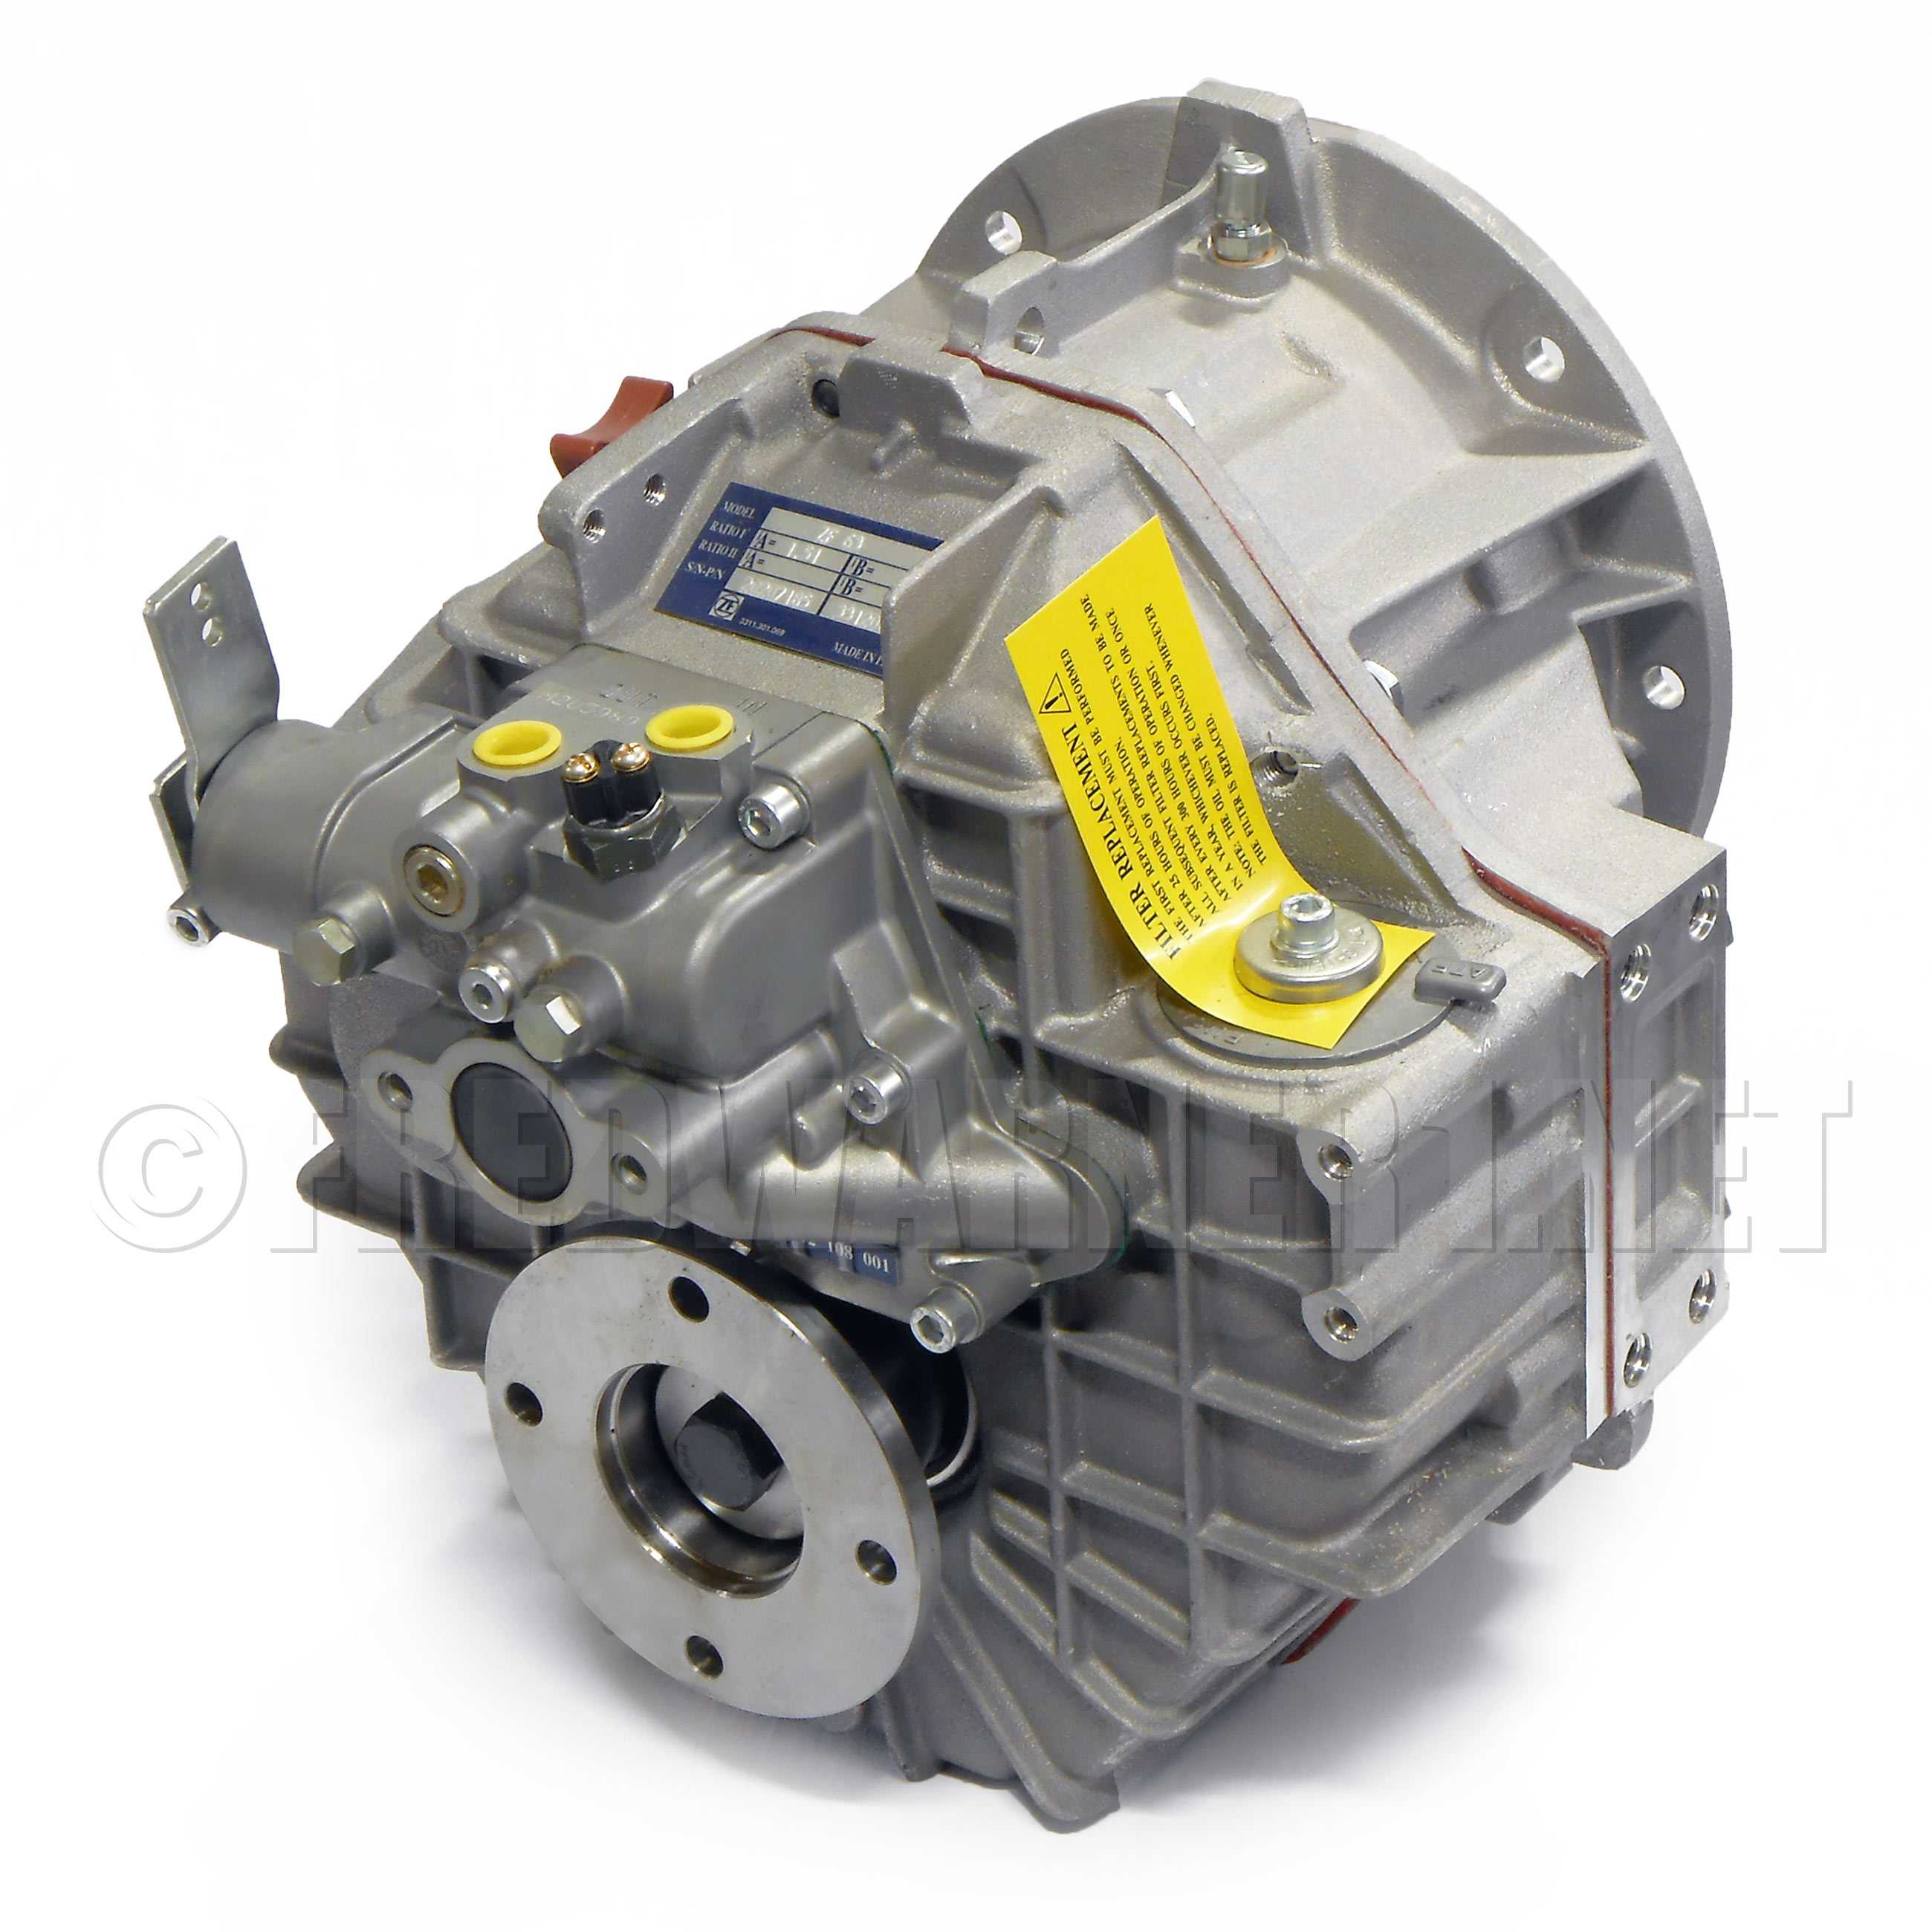 zf hurth hsw 630 v1 manual